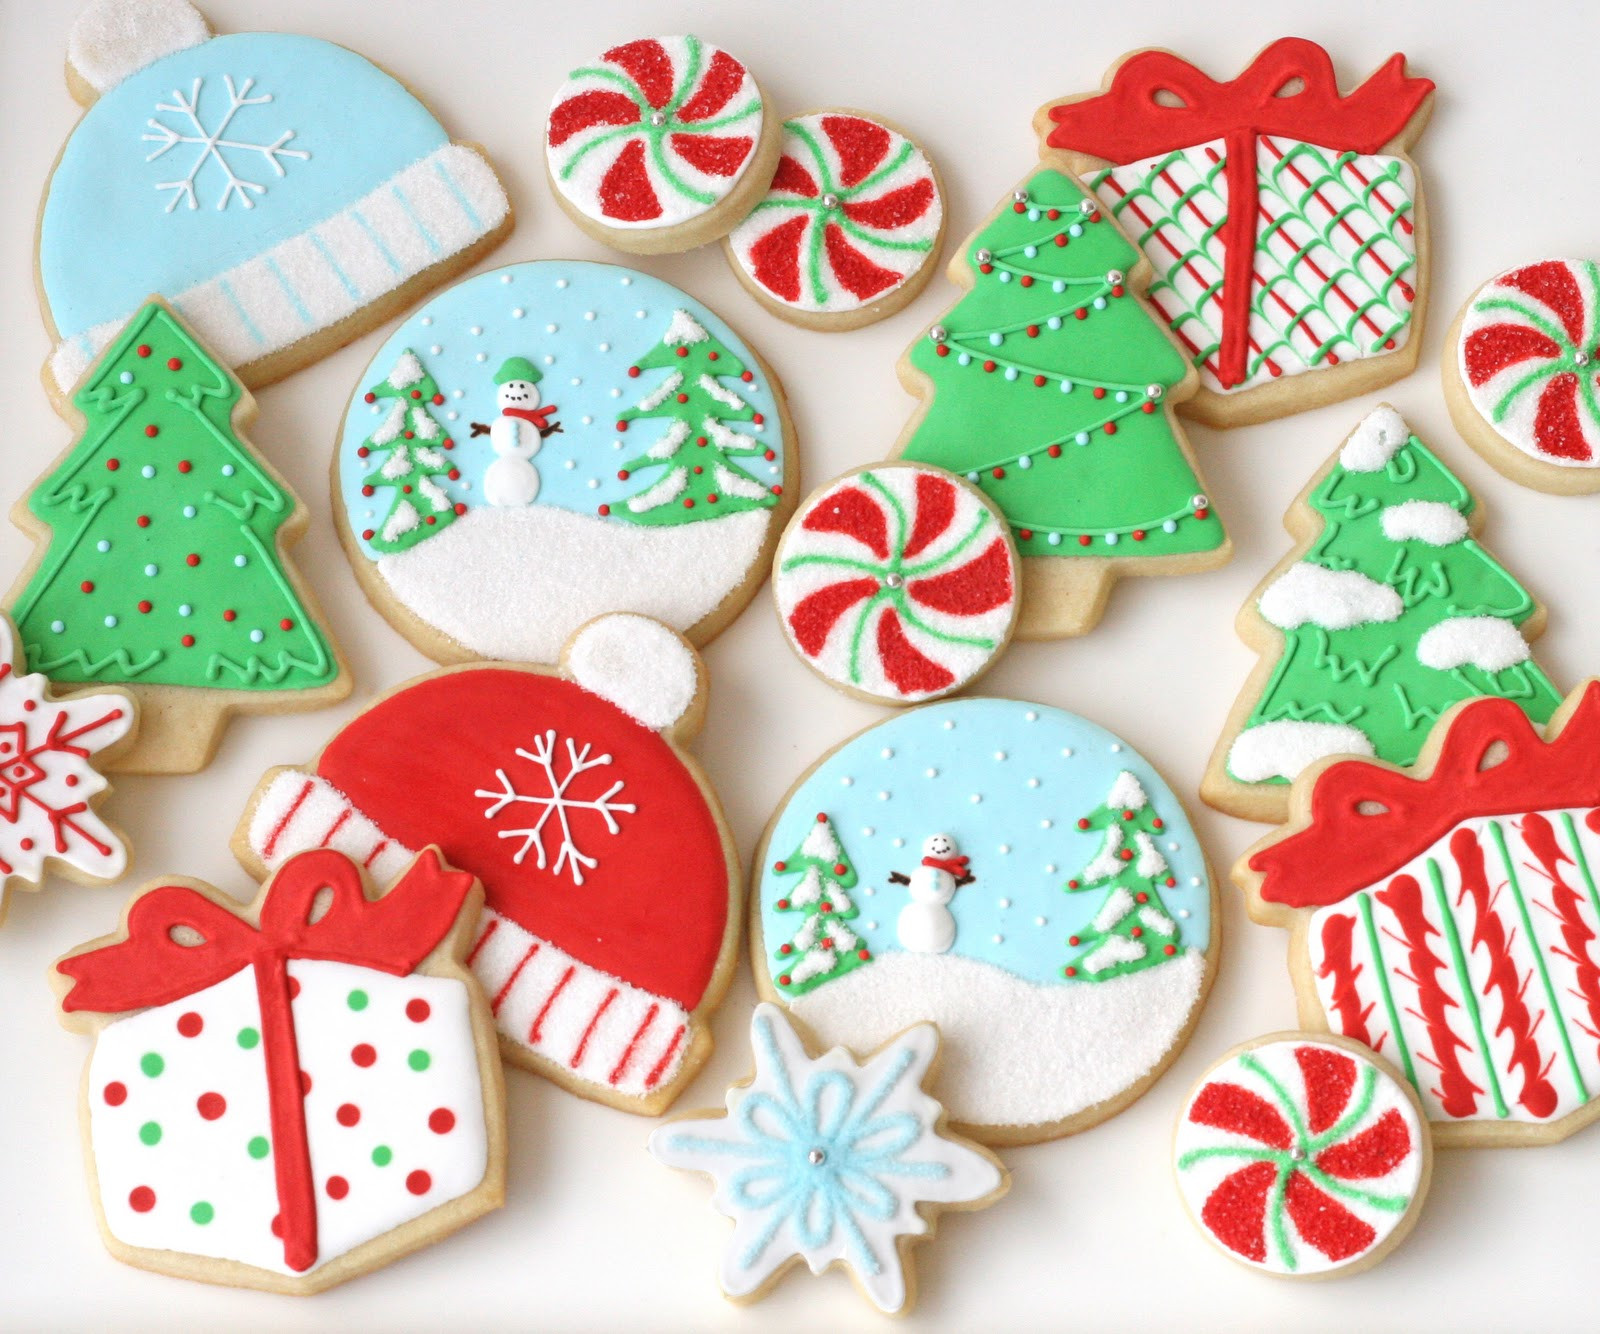 Christmas Cut Out Cookies  Christmas Cookies Galore Glorious Treats